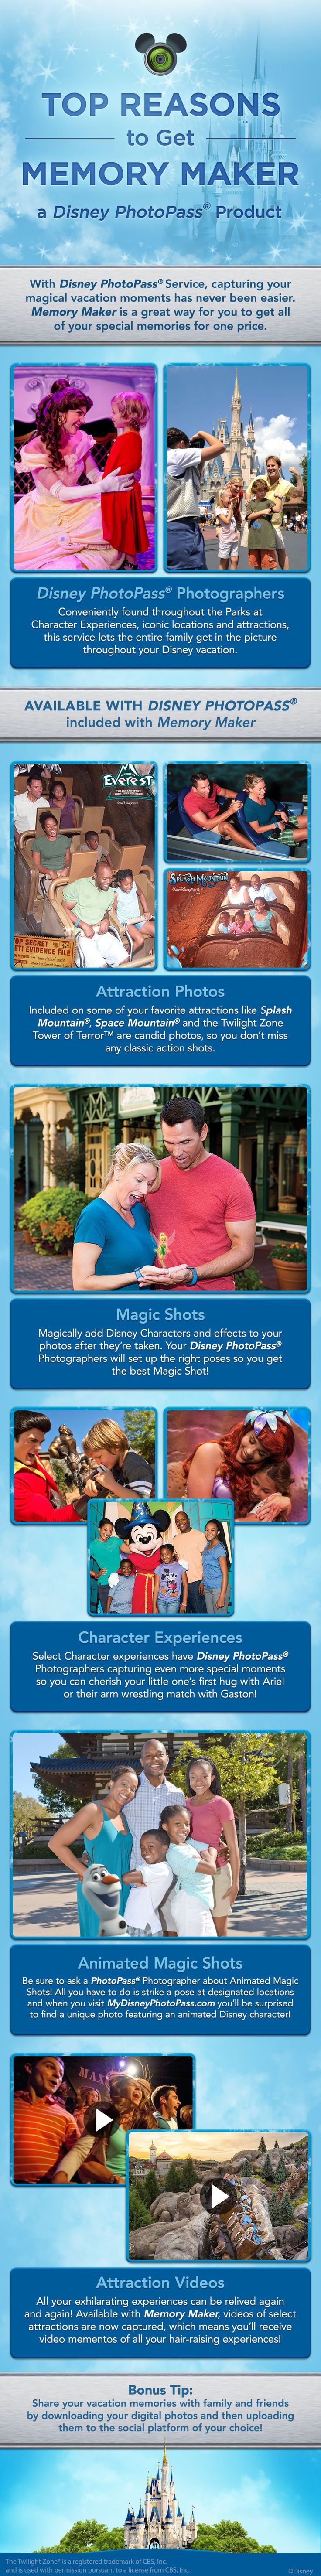 10 Reasons Why You Should Invest in Disney's Memory Maker http://www.magicplanning.com/?p=417 #disney #disneysecrets